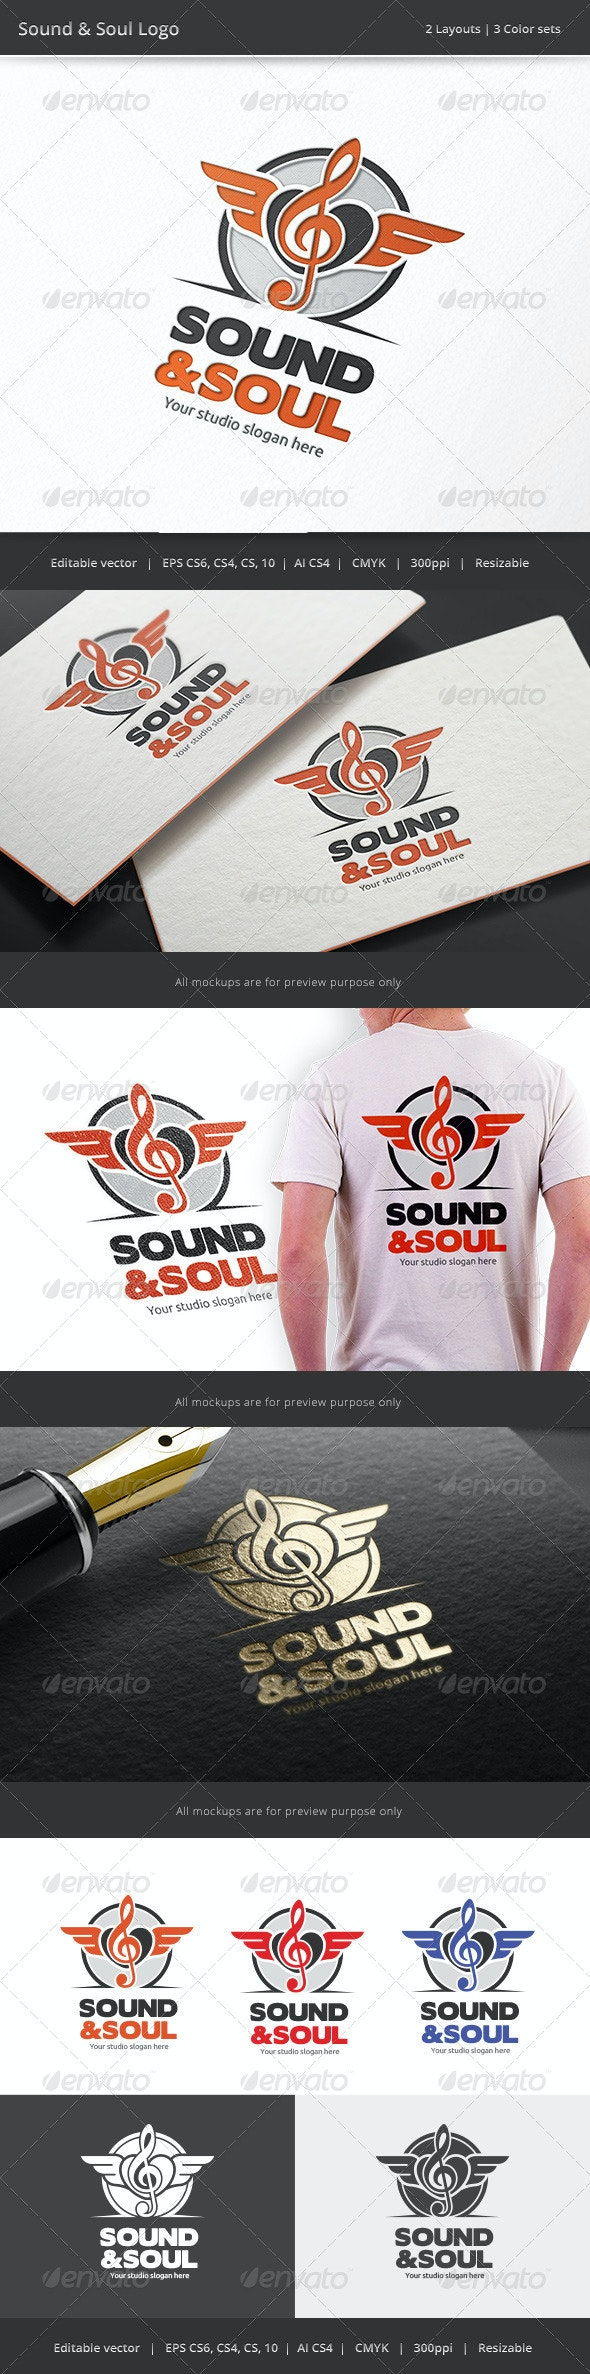 Sound & Soul Music Logo - Vector Abstract